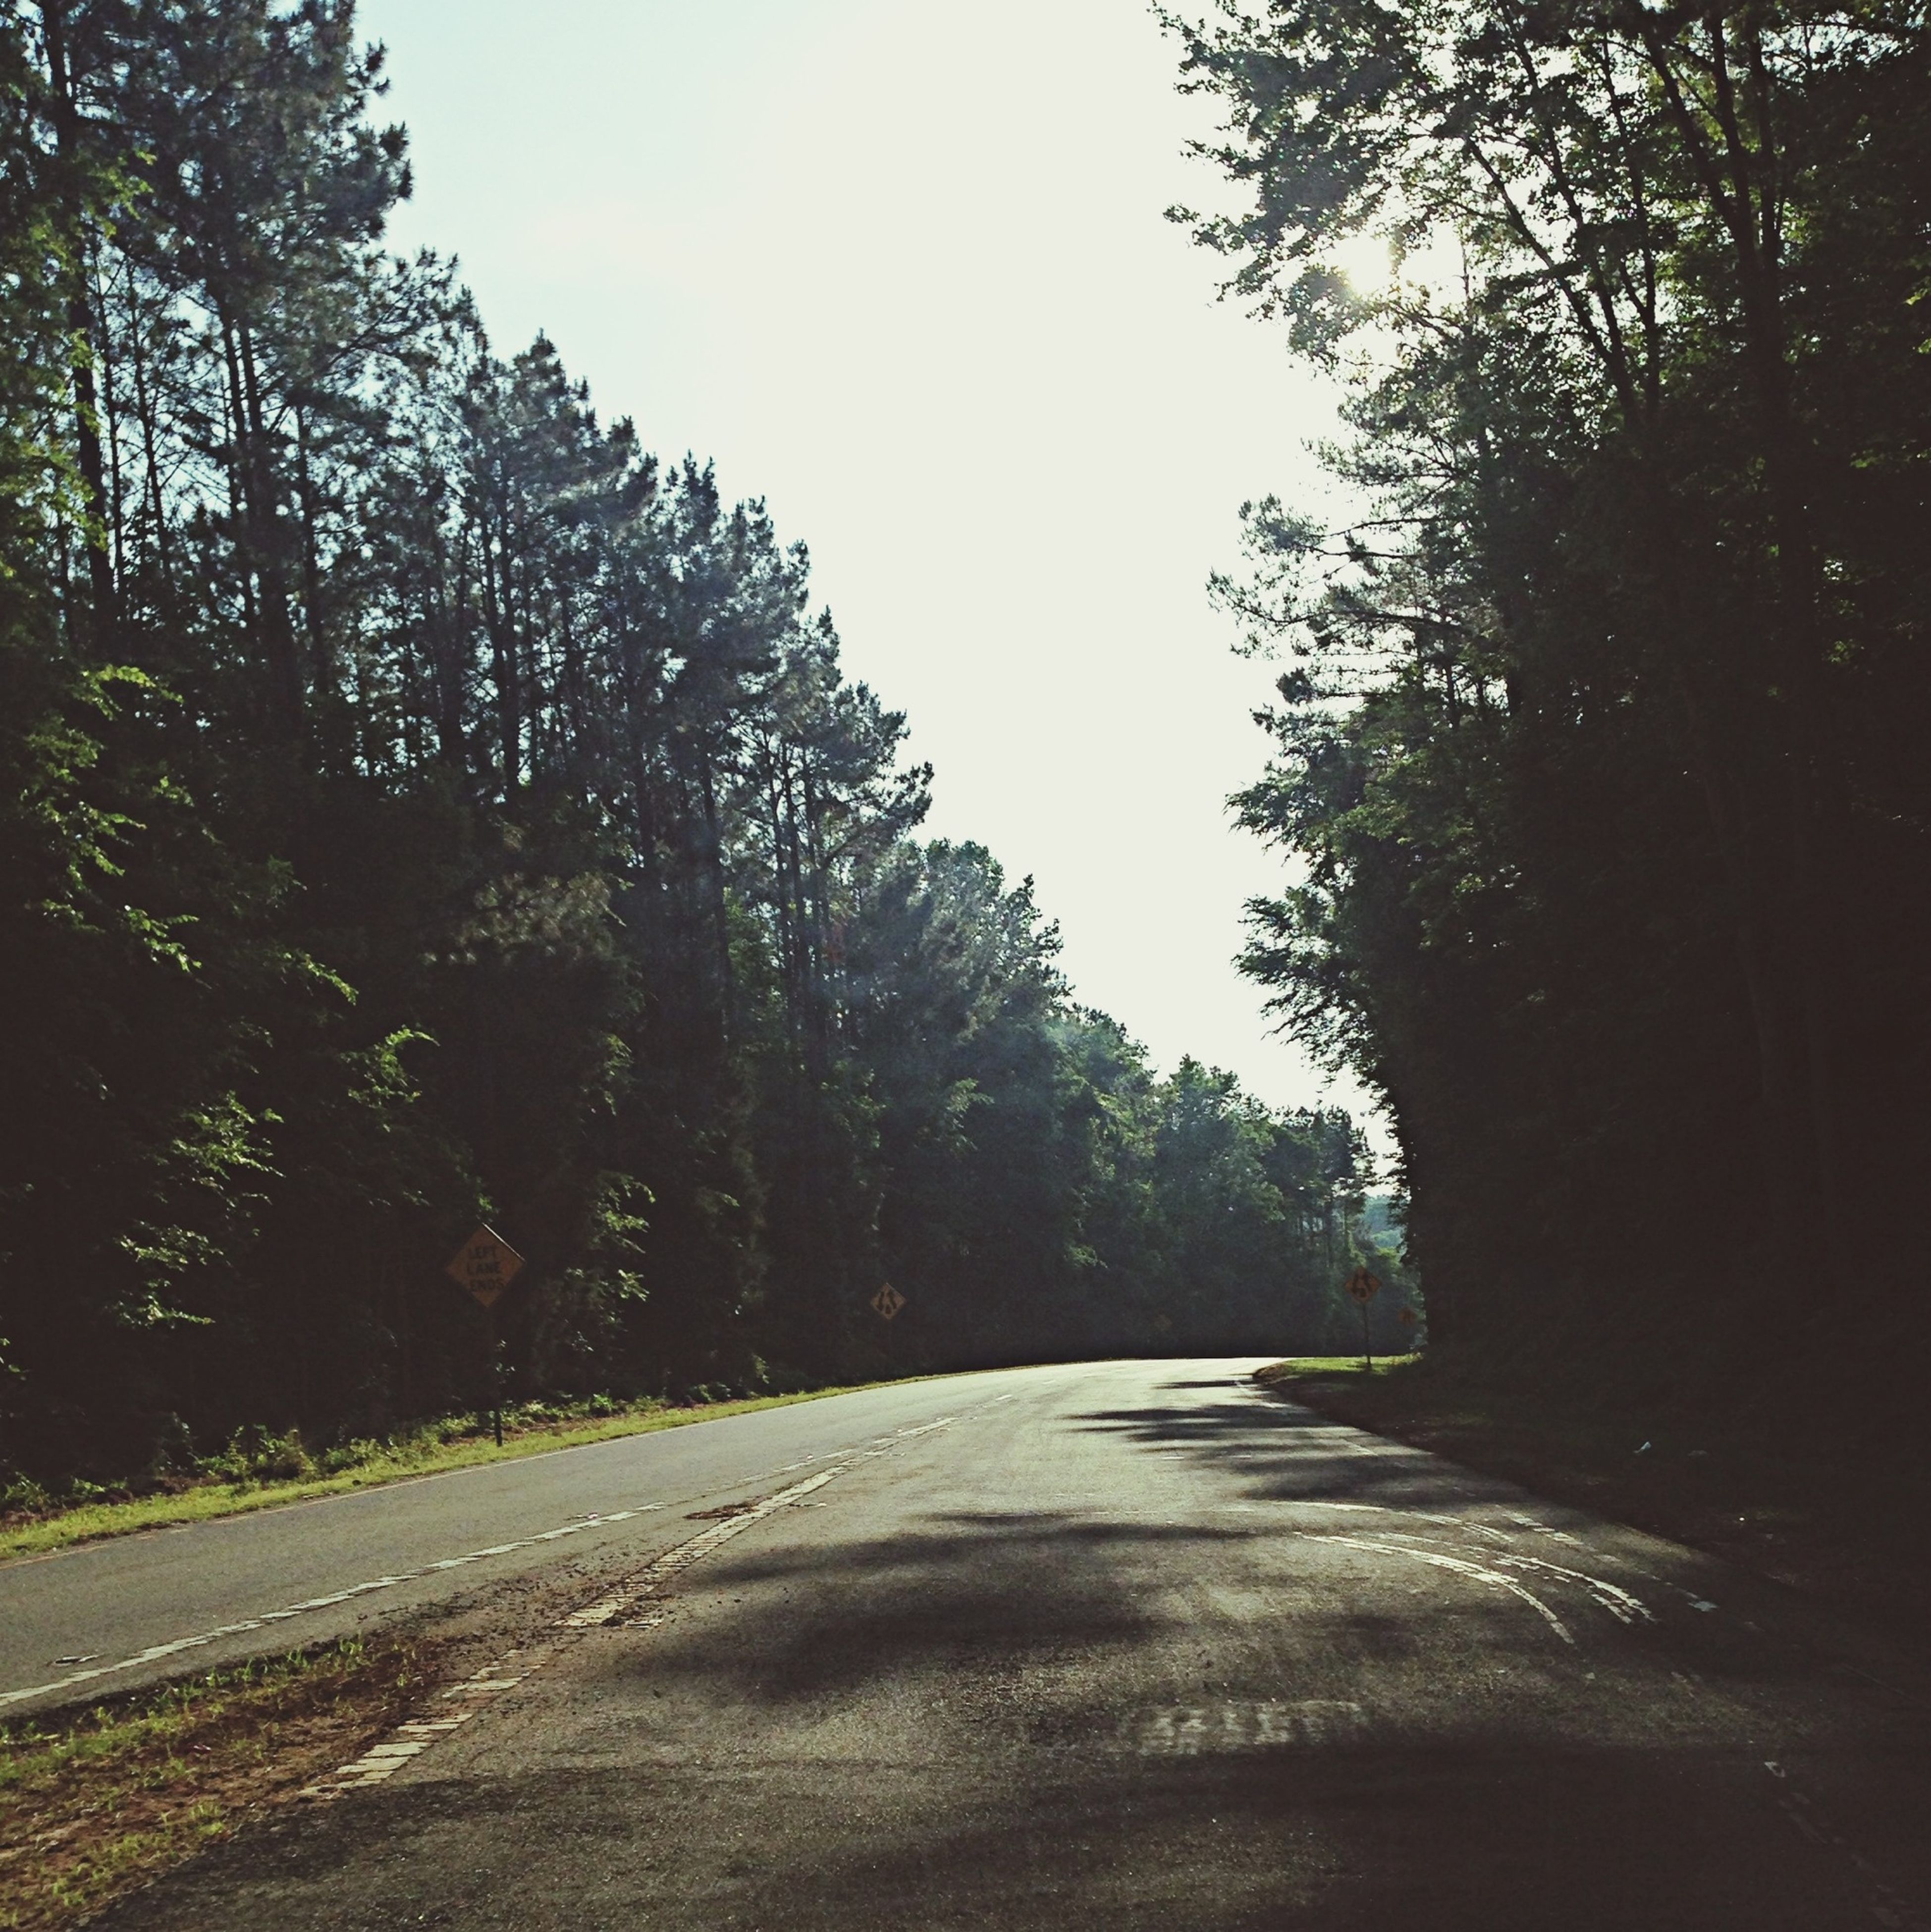 the way forward, tree, road, diminishing perspective, transportation, vanishing point, empty road, country road, tranquility, street, nature, empty, growth, tranquil scene, dirt road, long, clear sky, asphalt, road marking, sky